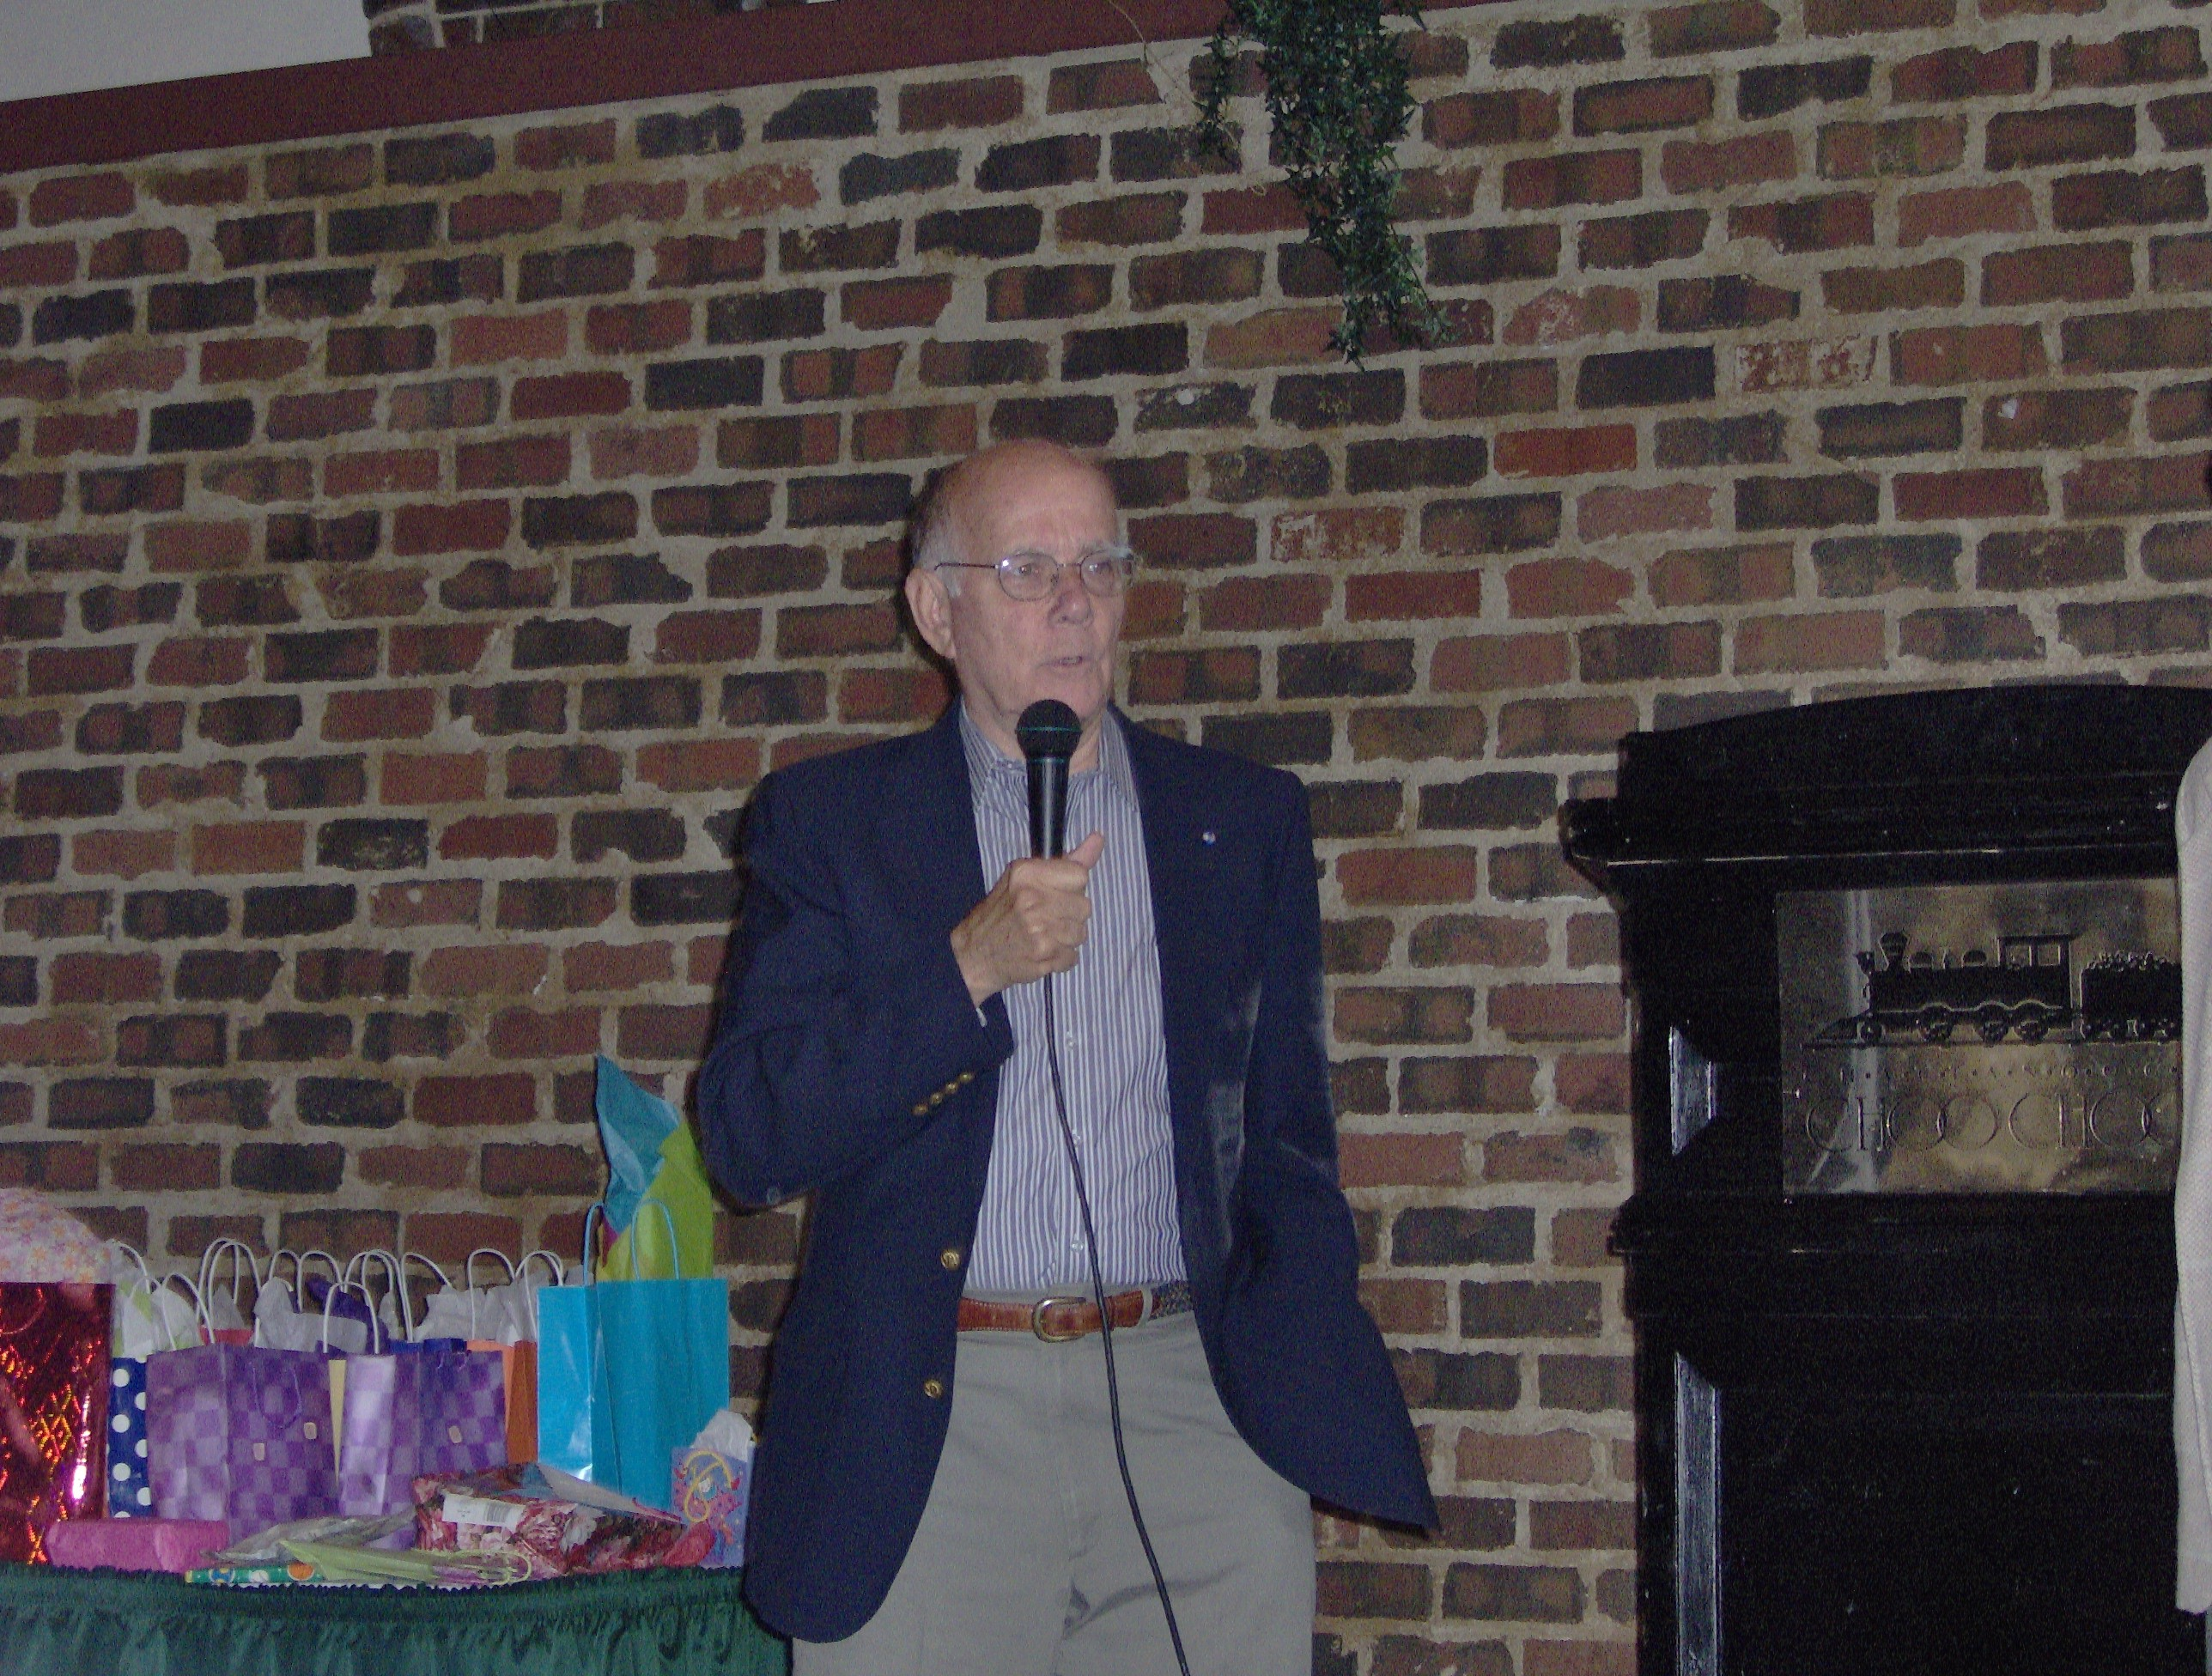 Bill Gann speaking at the 2006 OFHS meeting in Chattanooga, TN